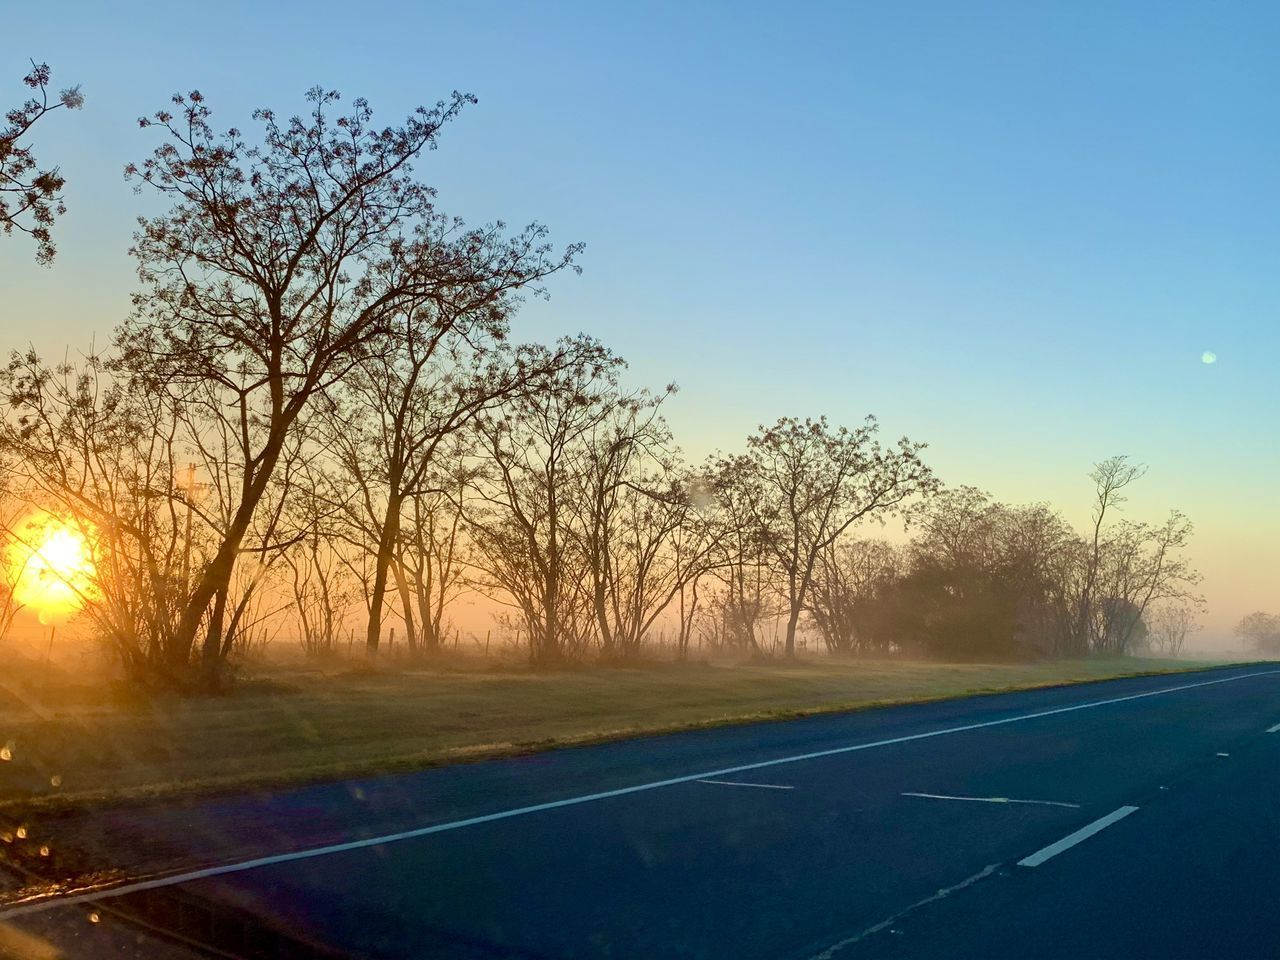 tree, sky, sunset, plant, road, nature, no people, transportation, symbol, tranquility, beauty in nature, road marking, marking, landscape, bare tree, sun, outdoors, scenics - nature, sunlight, tranquil scene, dividing line